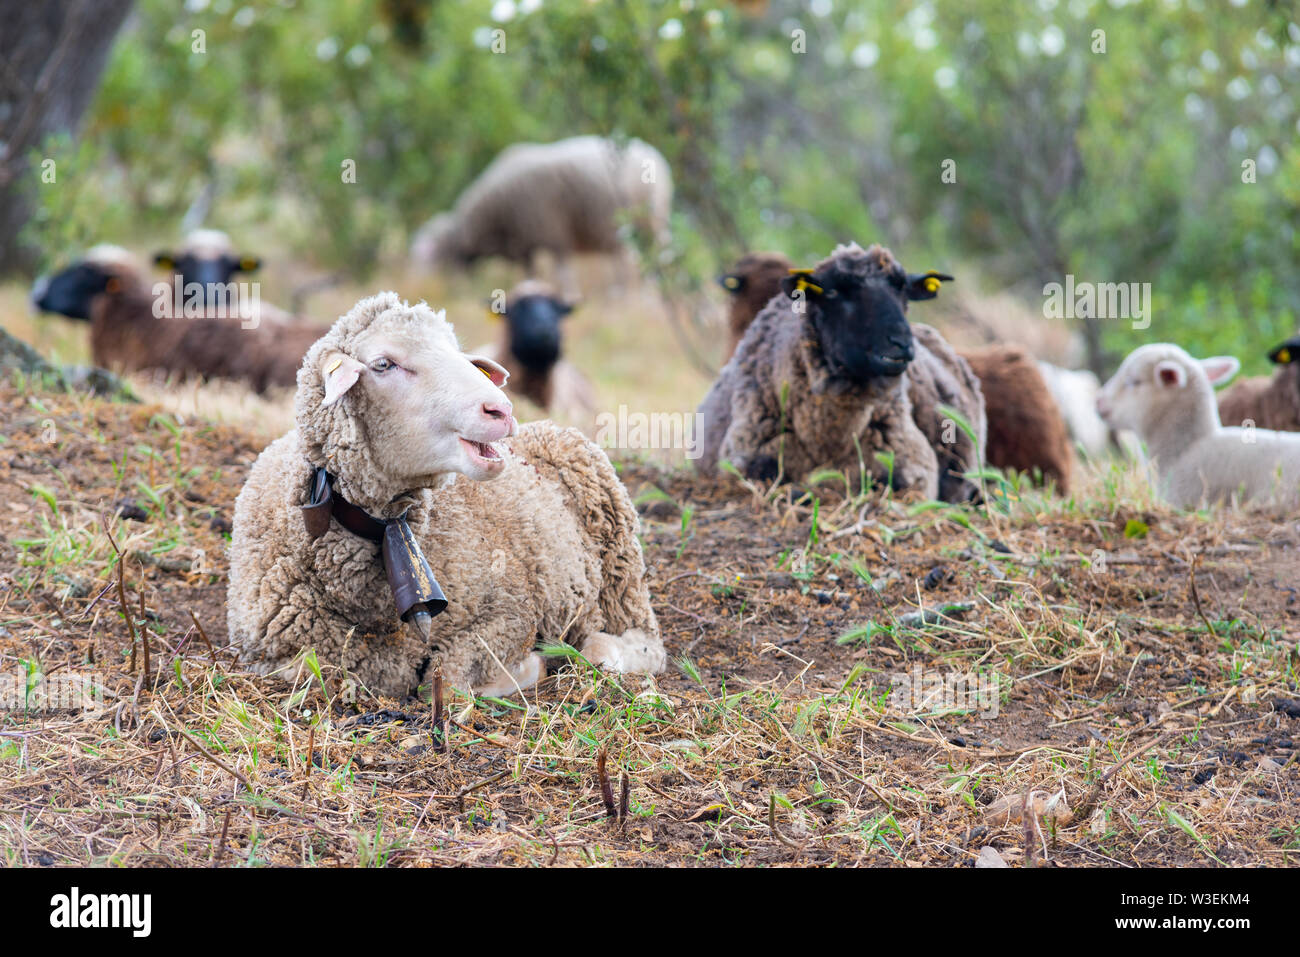 sheep resting in the field - Stock Image